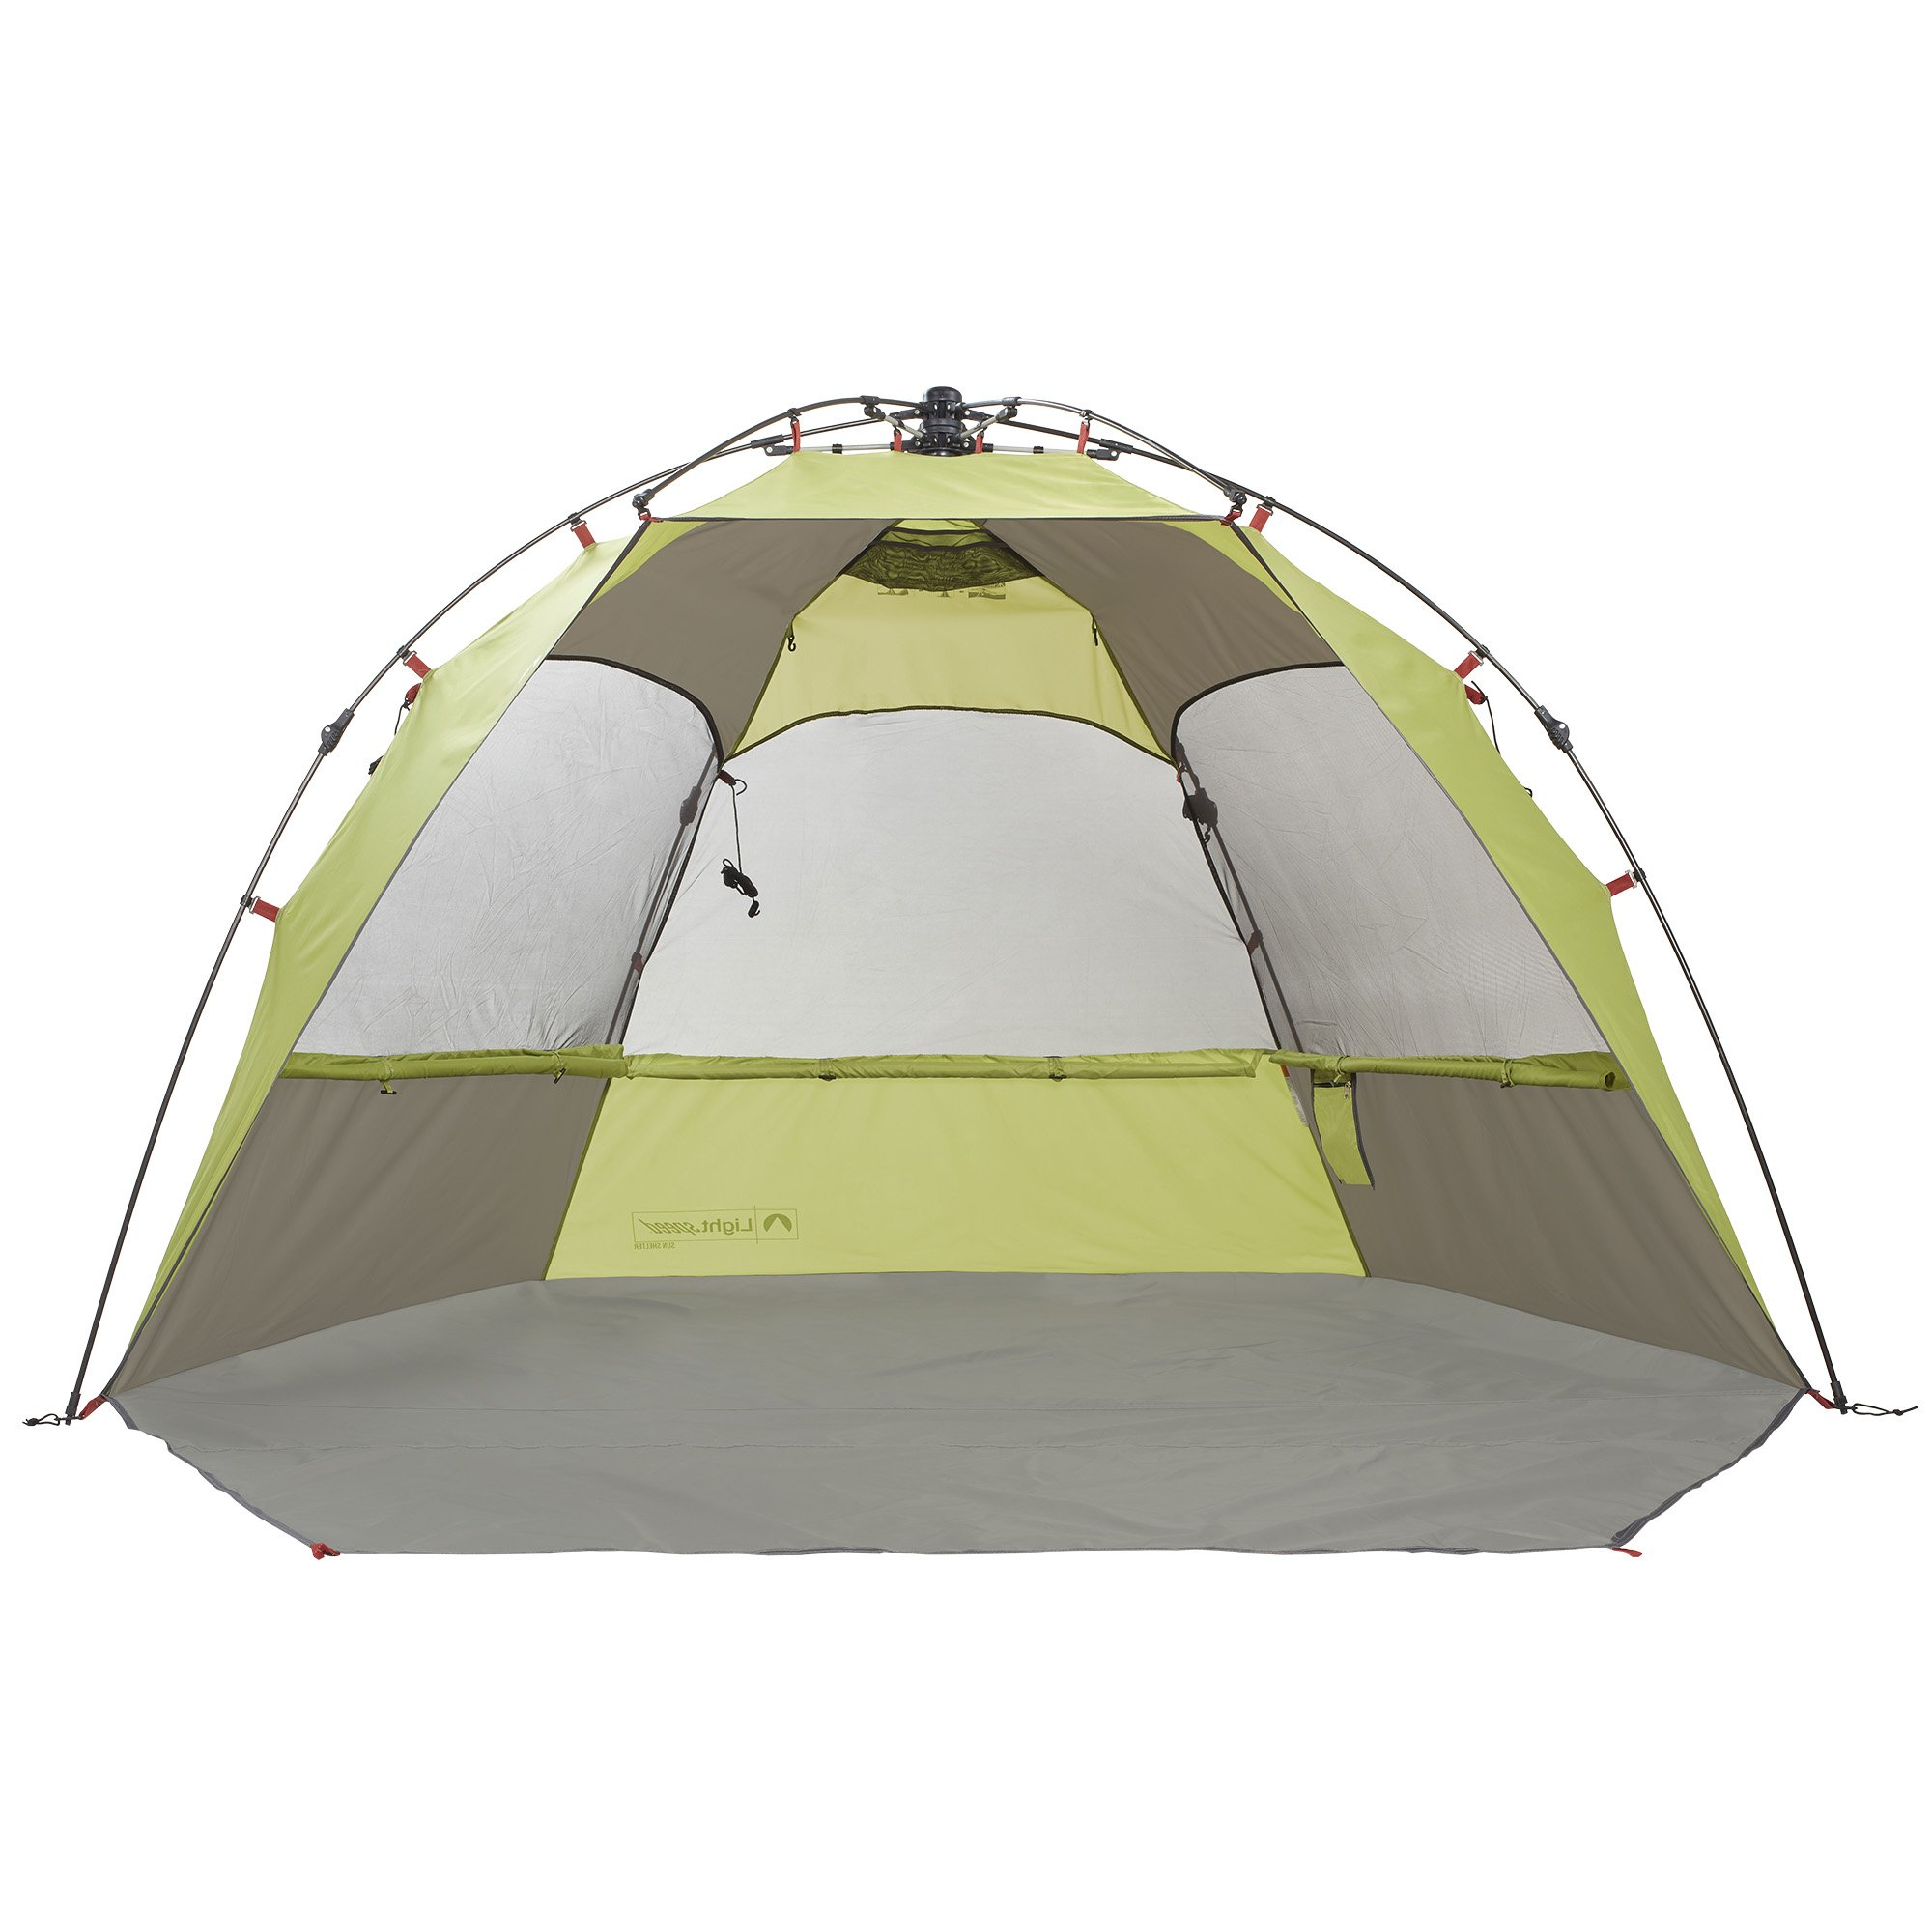 fd186ec8b2 Lightspeed Outdoors Sun Shelter with Clip-Up Privacy Feature product image